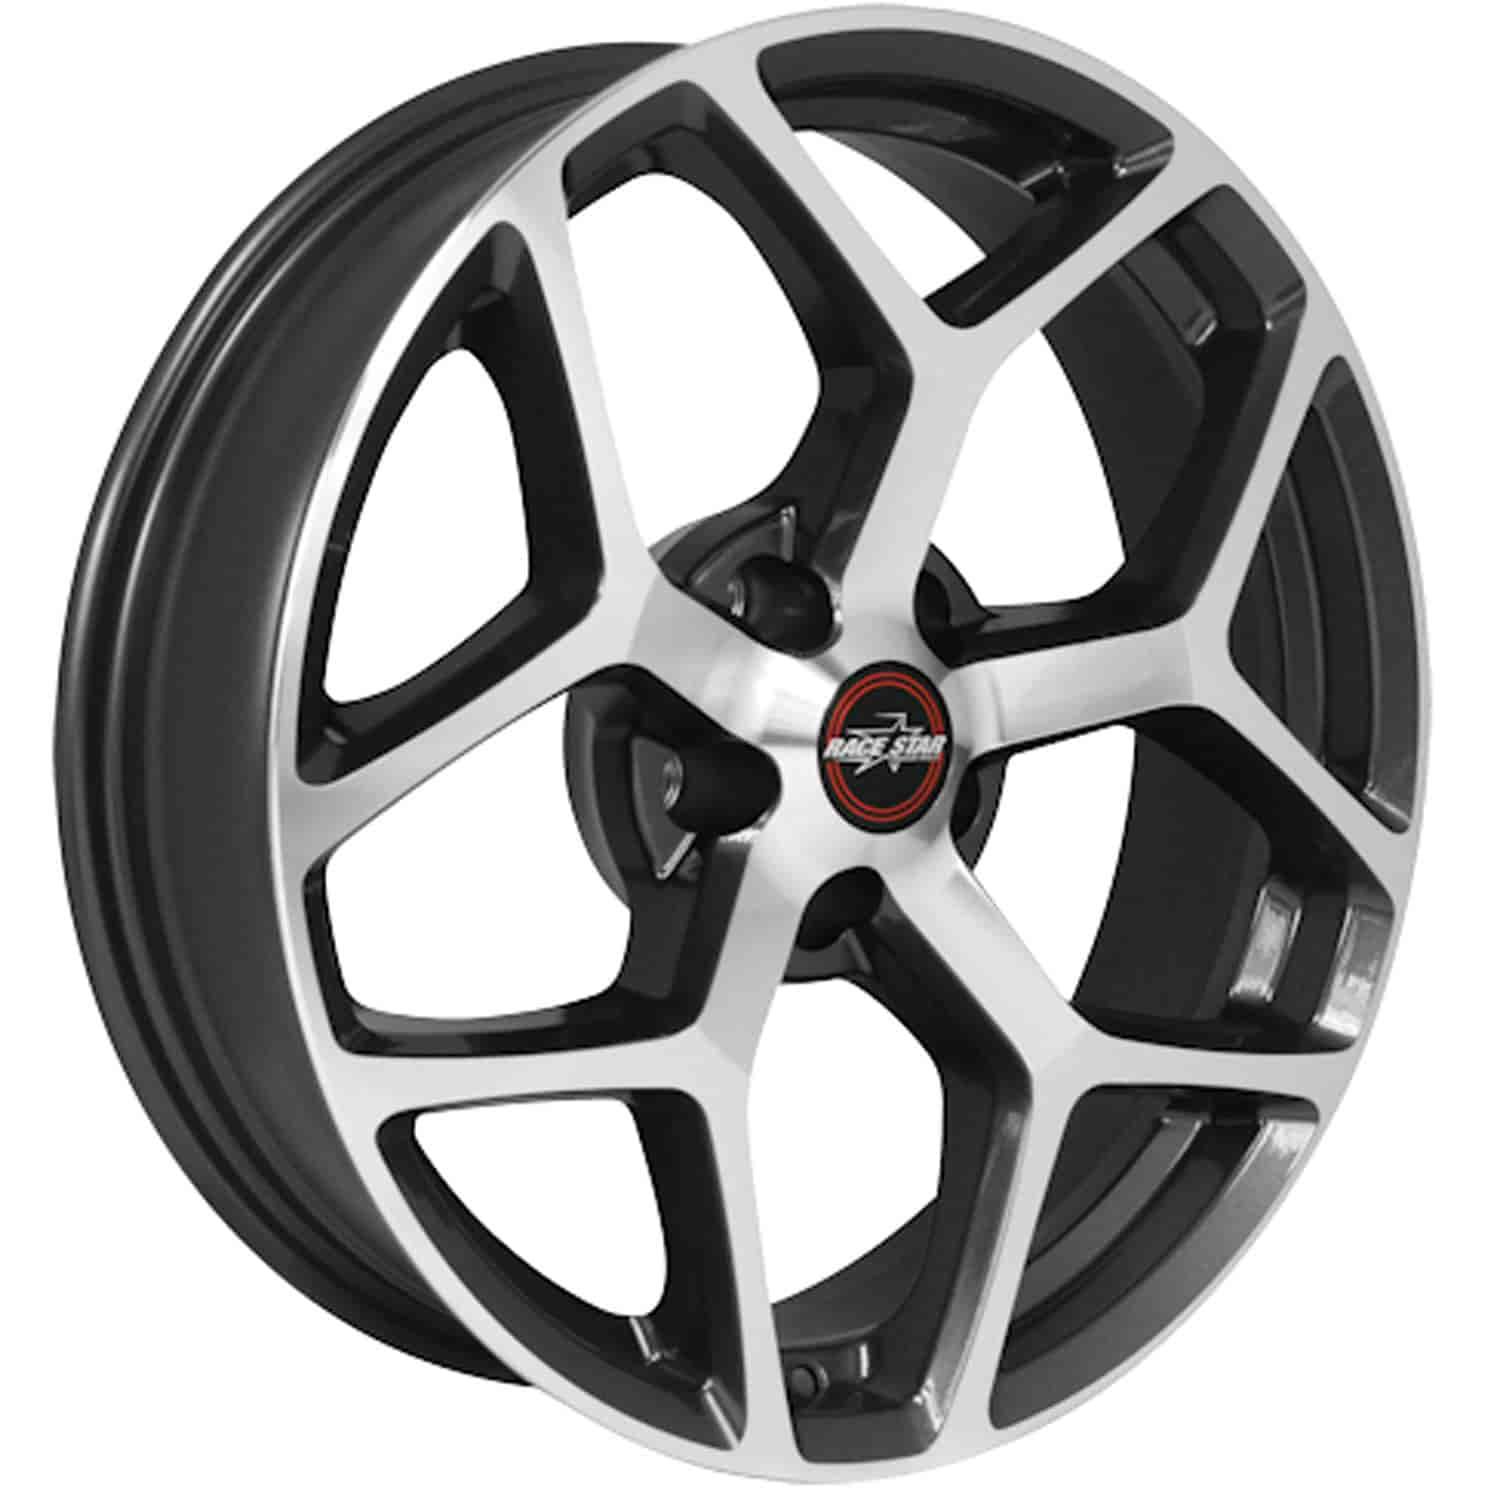 Race Star Wheels 95-805255GP